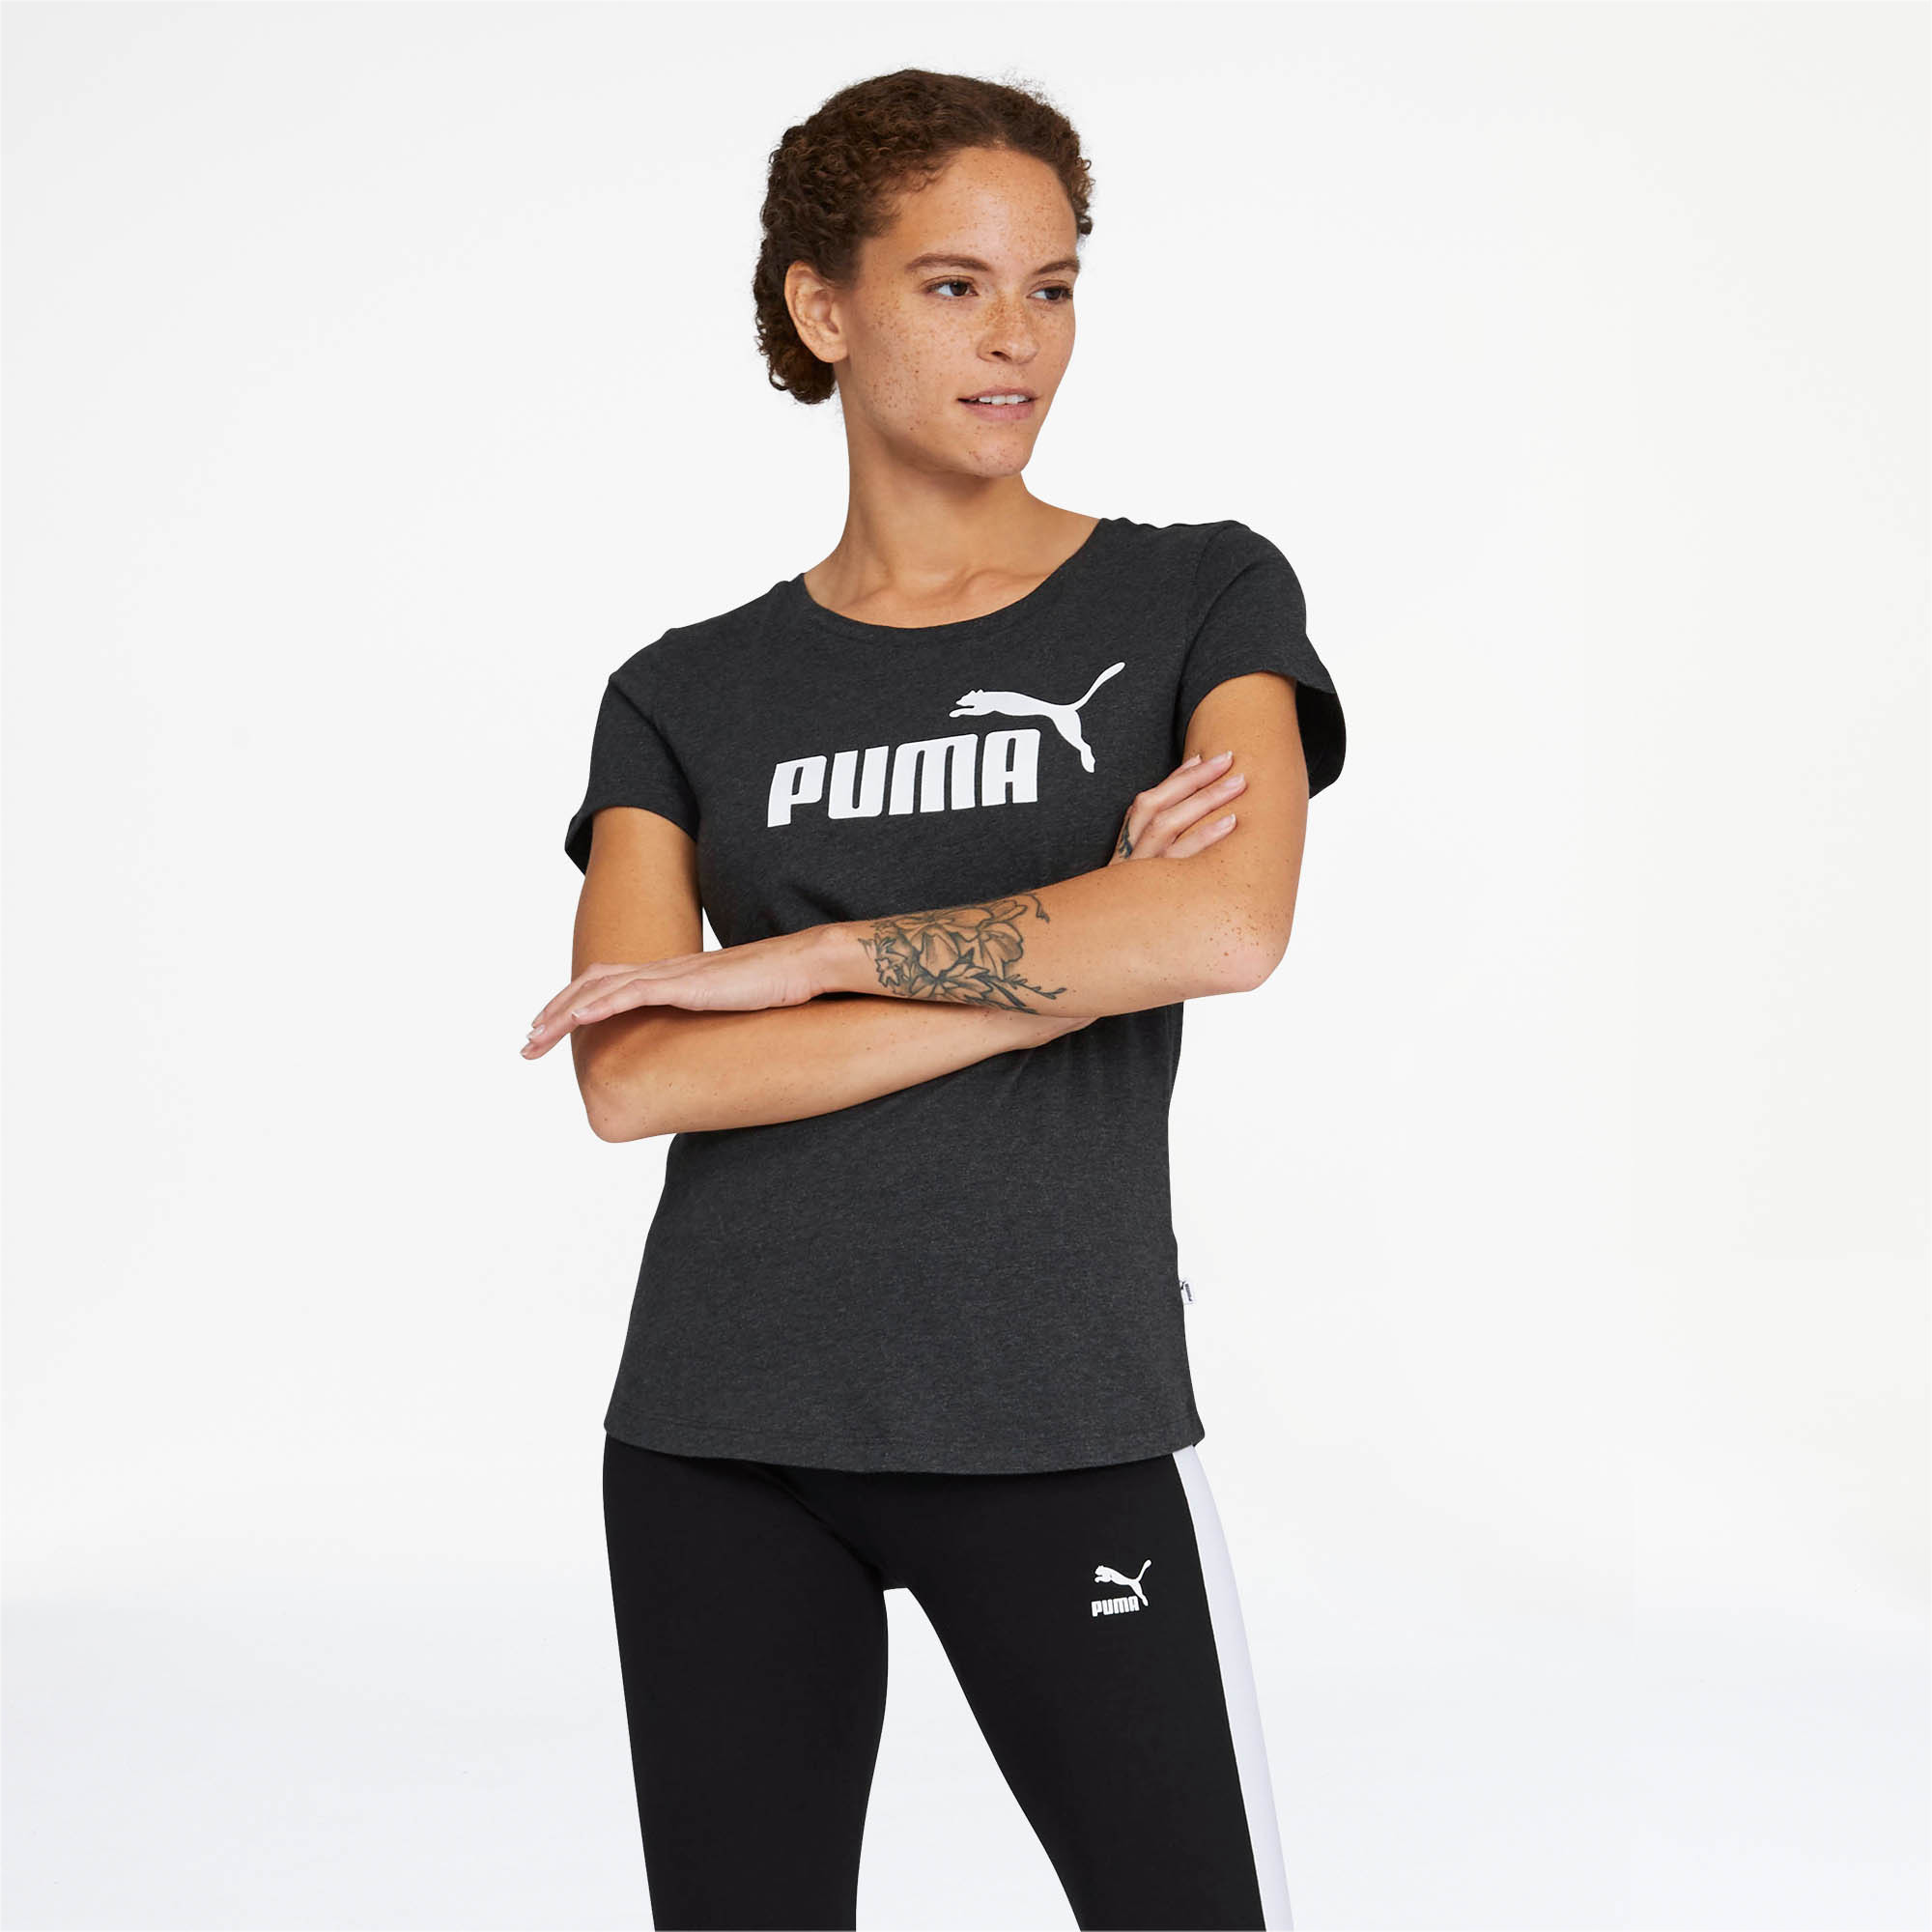 PUMA-Essentials-Women-039-s-Tee-Women-Tee-Basics thumbnail 7